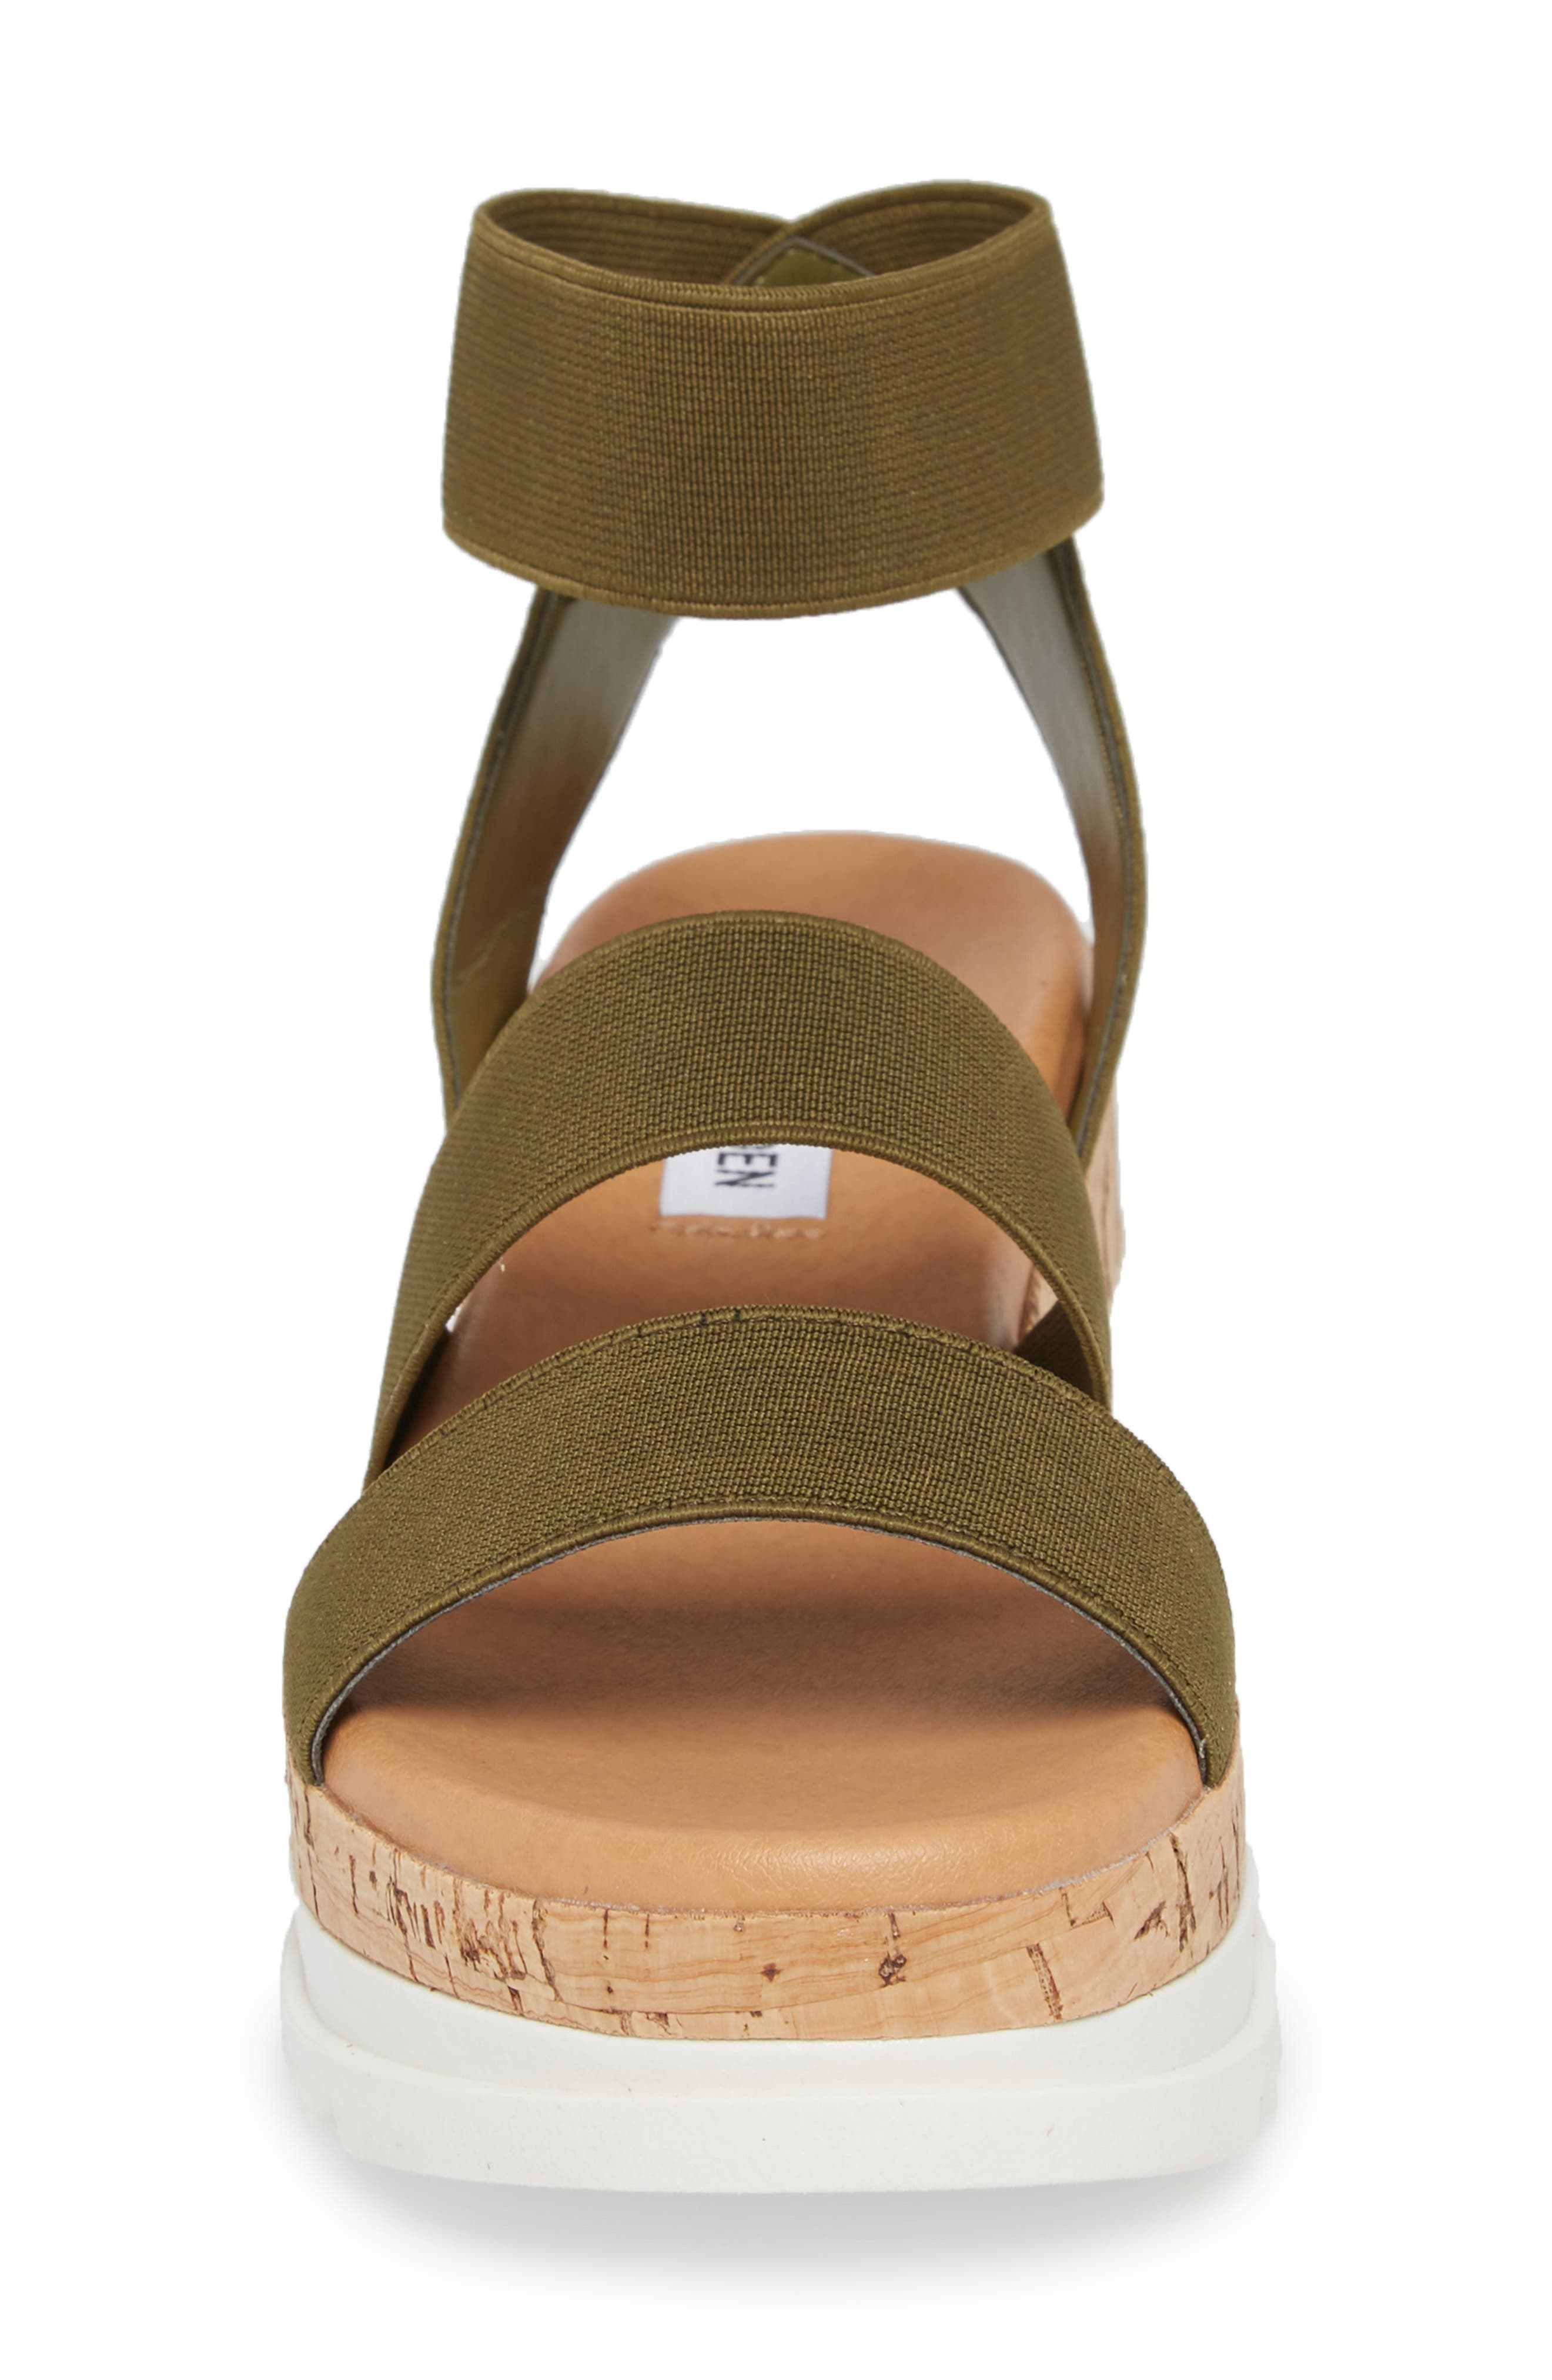 STEVE MADDEN, Bandi Platform Wedge Sandal, Alternate thumbnail 4, color, OLIVE